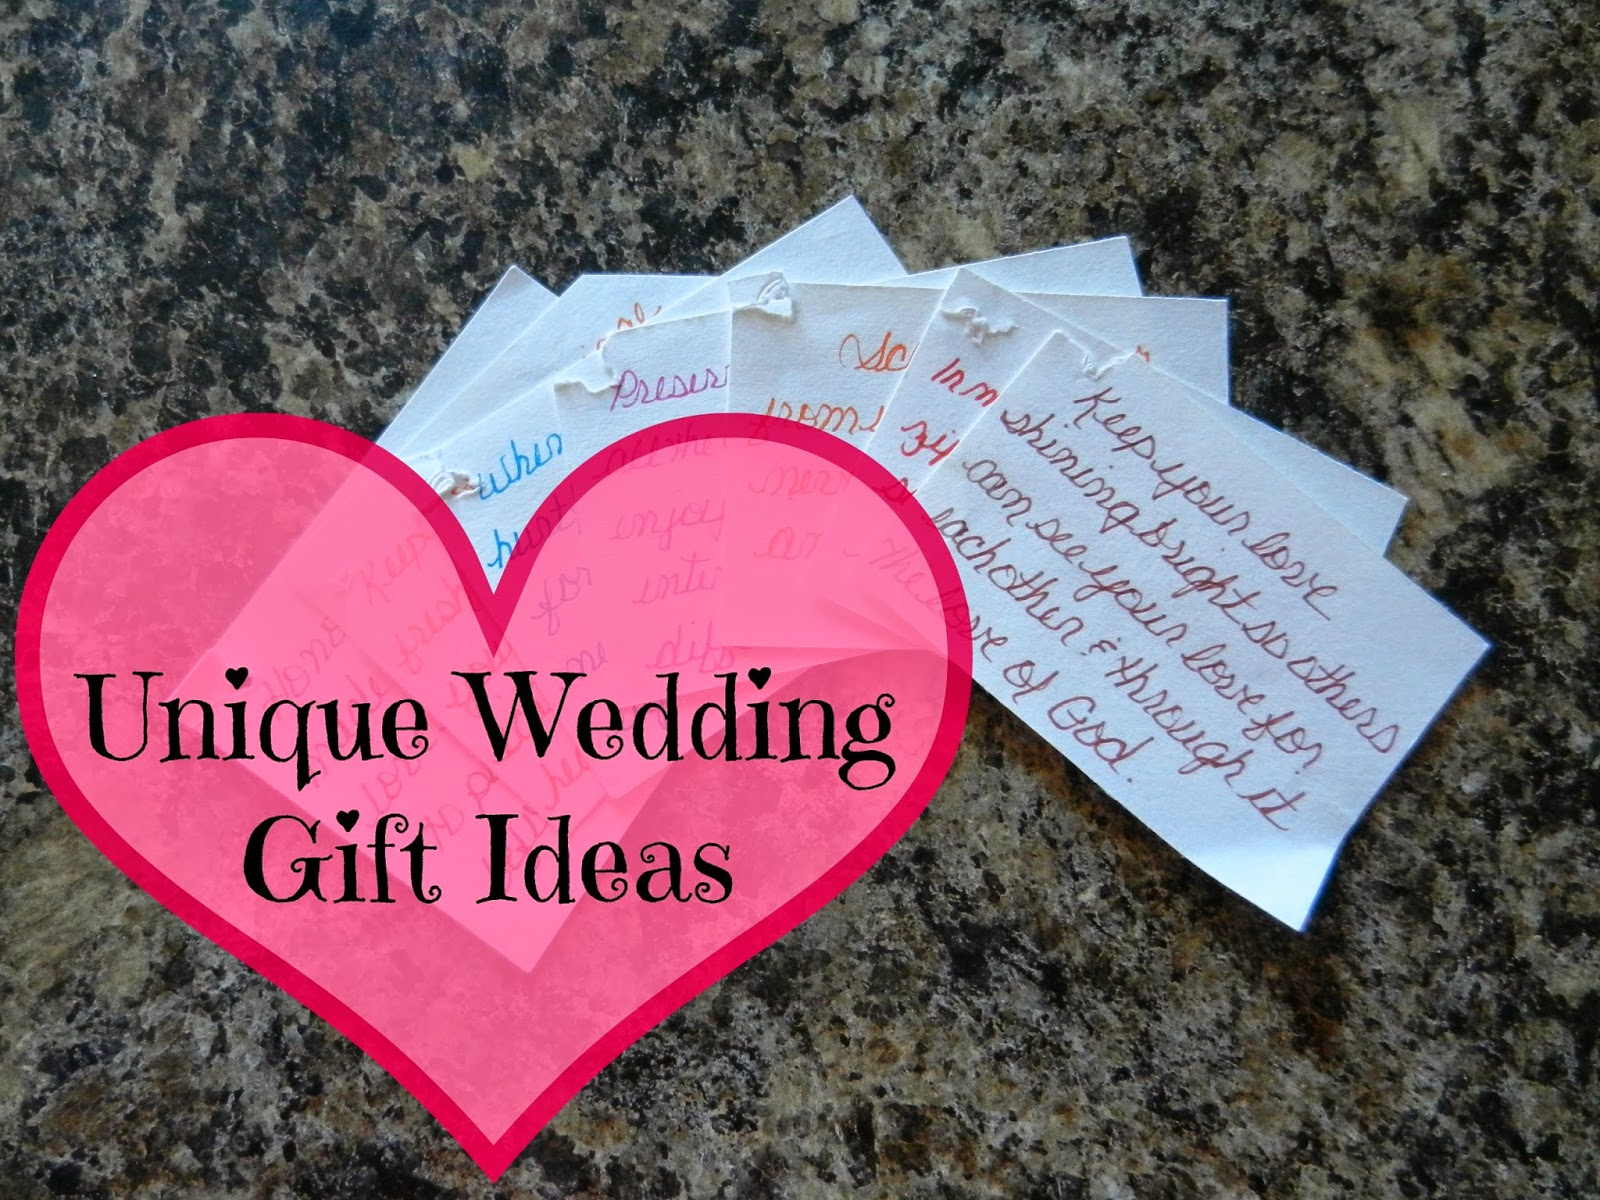 Wedding Gifts Ideas Unique : Gifts Unique Gifts Engagement Gift Ideas - creative-ideas.us